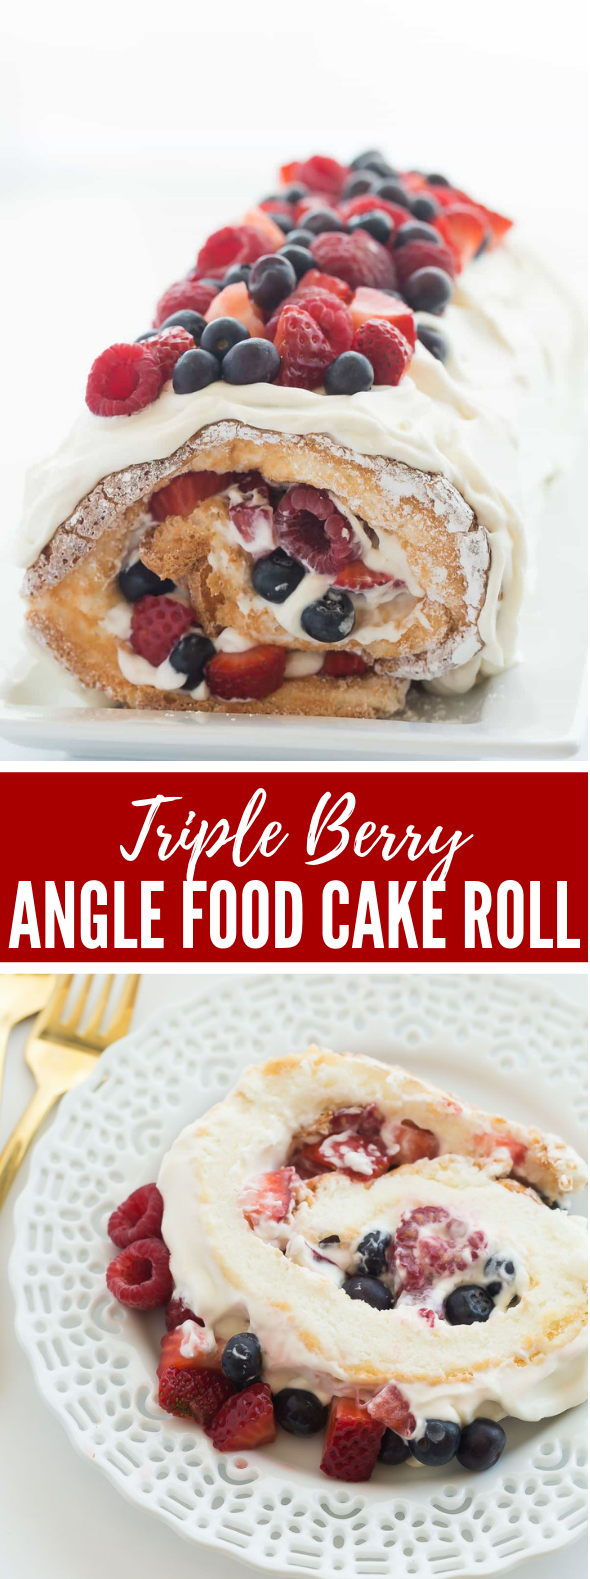 TRIPLE BERRY ANGEL FOOD CAKE ROLL (A RED, WHITE AND BLUE DESSERT) #cakerecipe #desserts